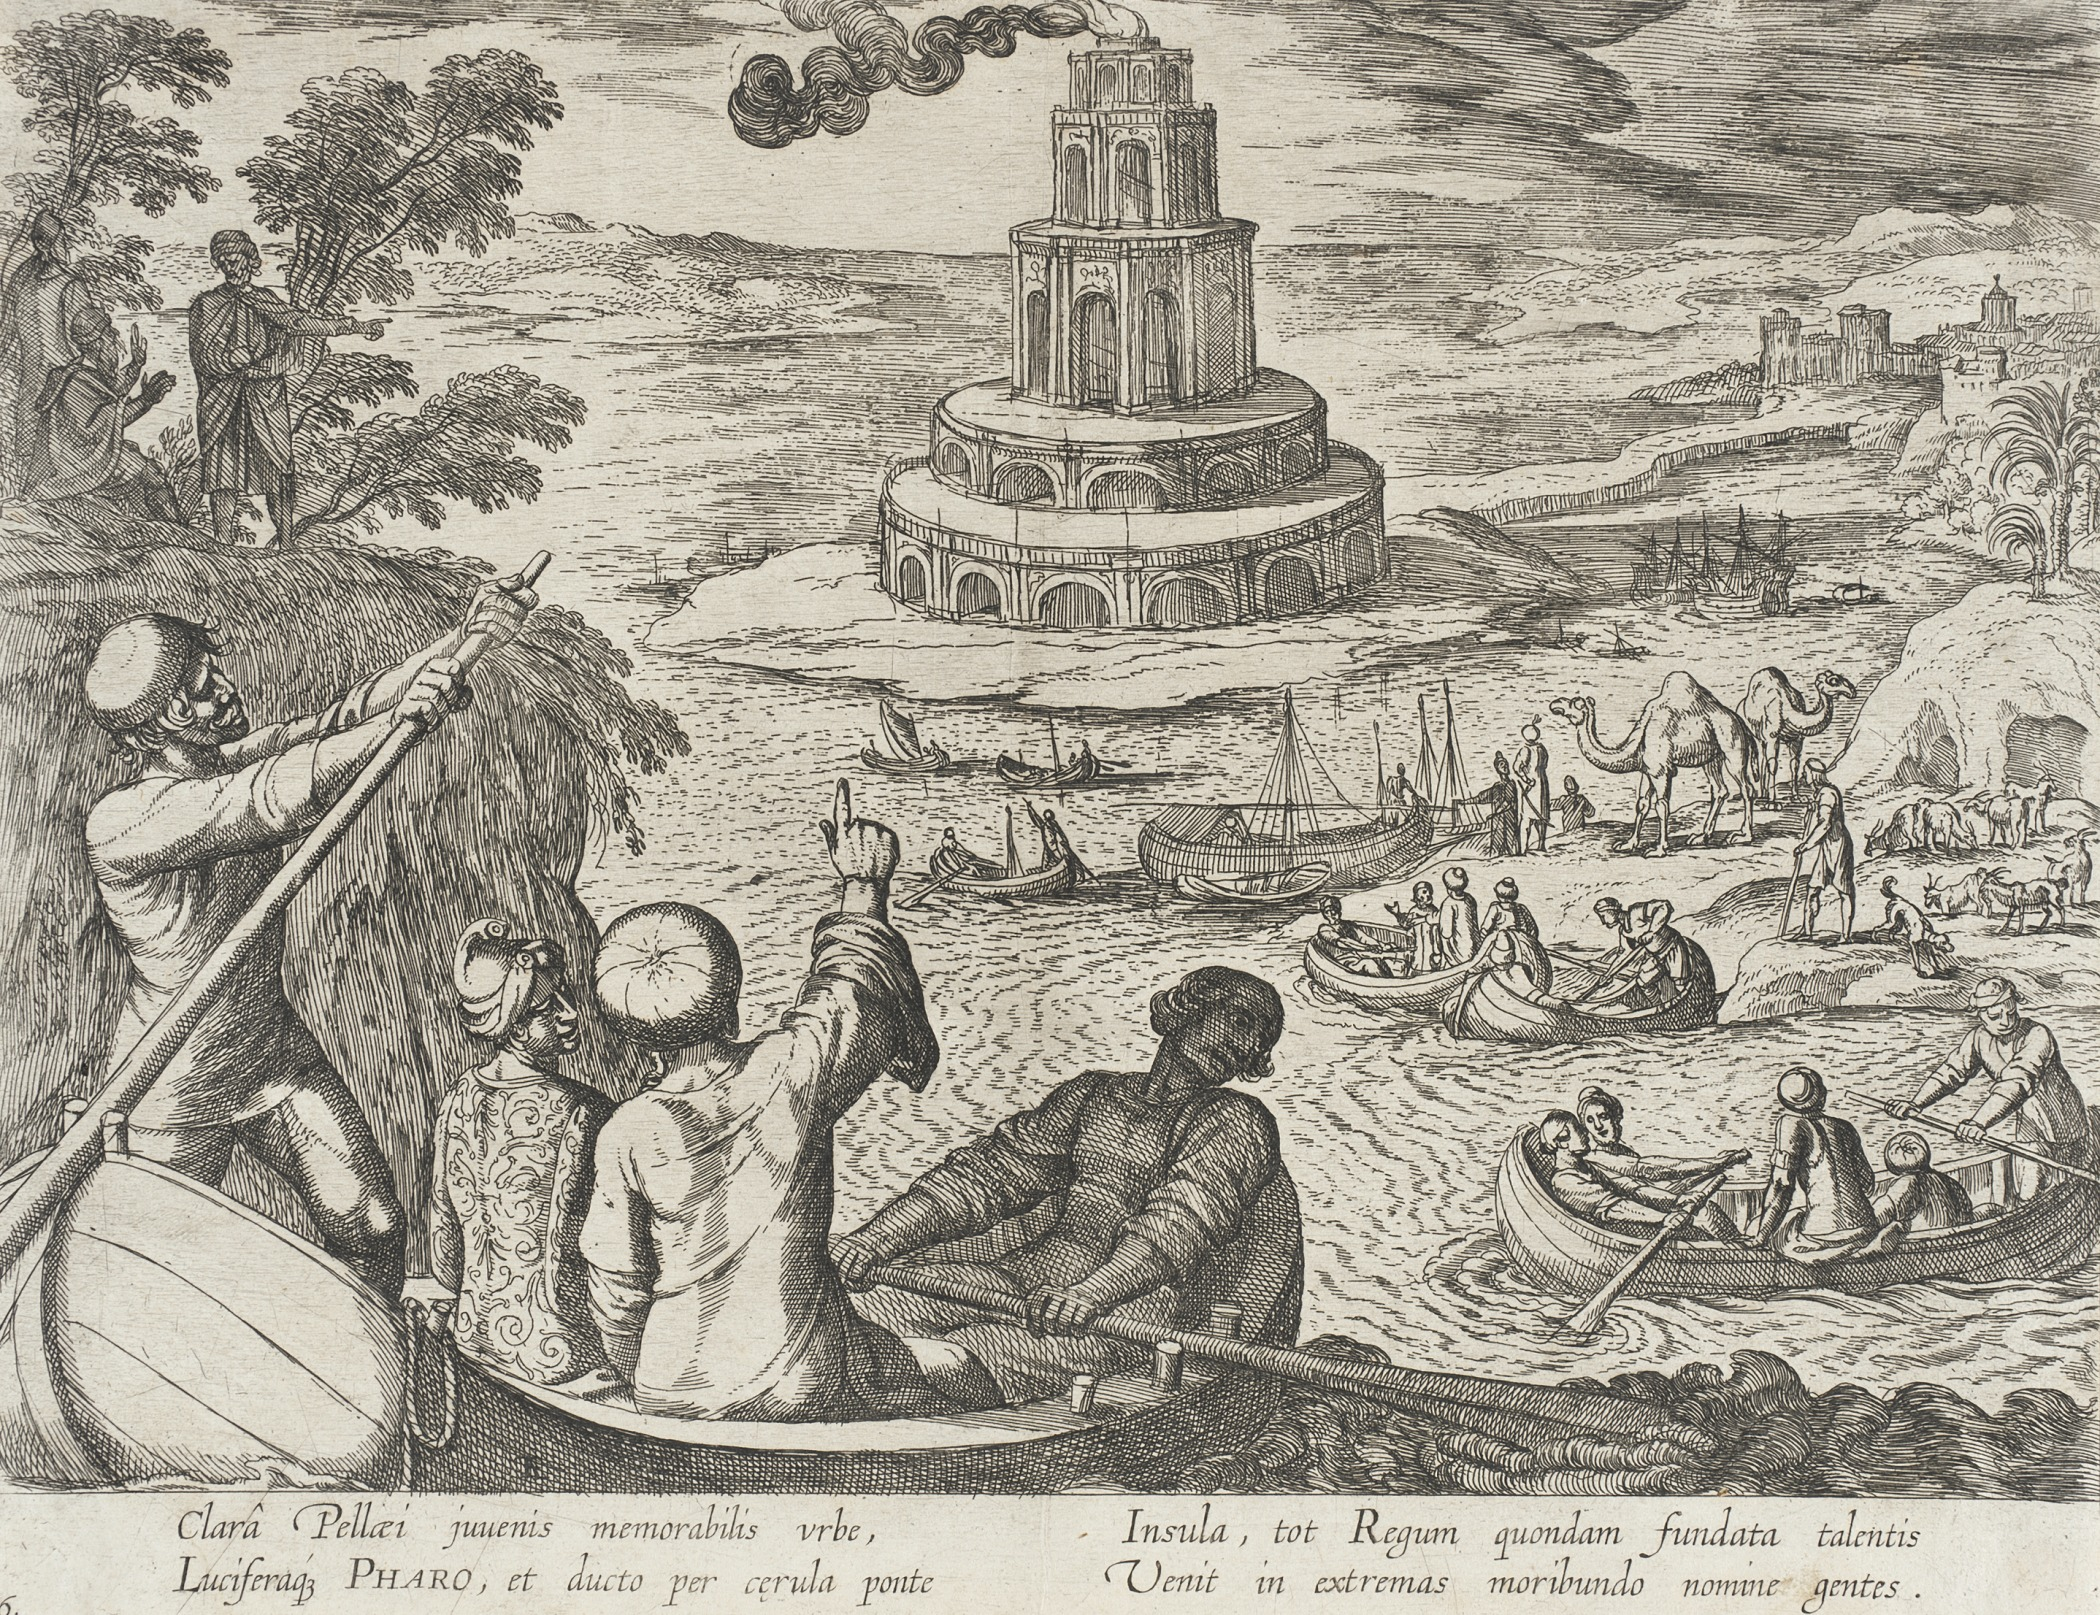 Etching published in Italy, 1610